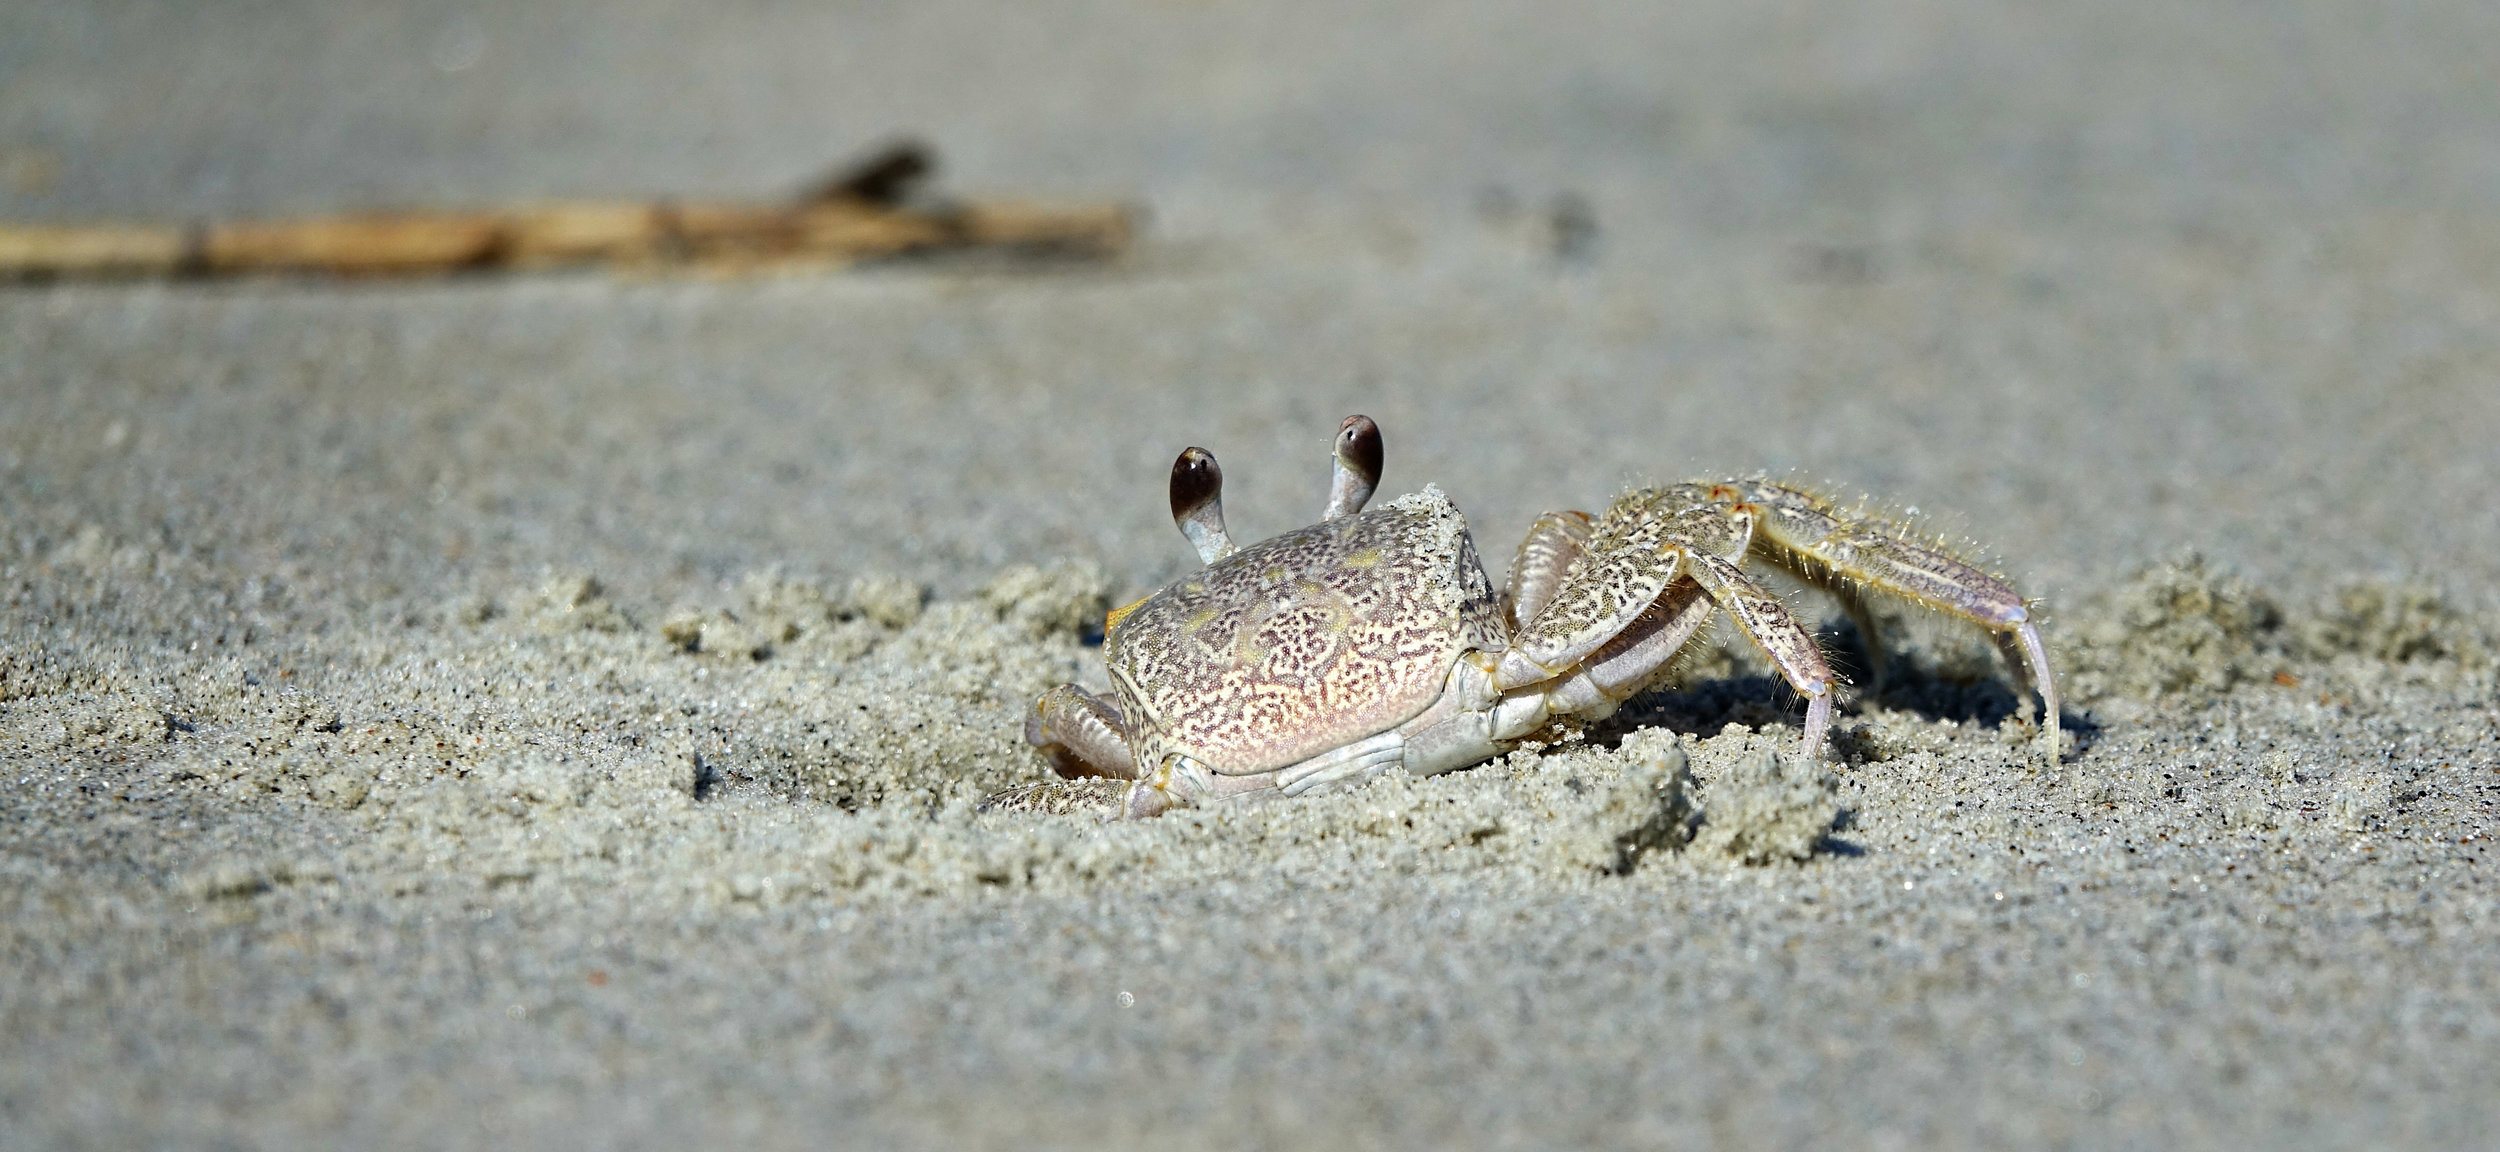 ATLANTIC GHOST CRAB ( Ocypode quadrata),  South Carolina, August, 2017